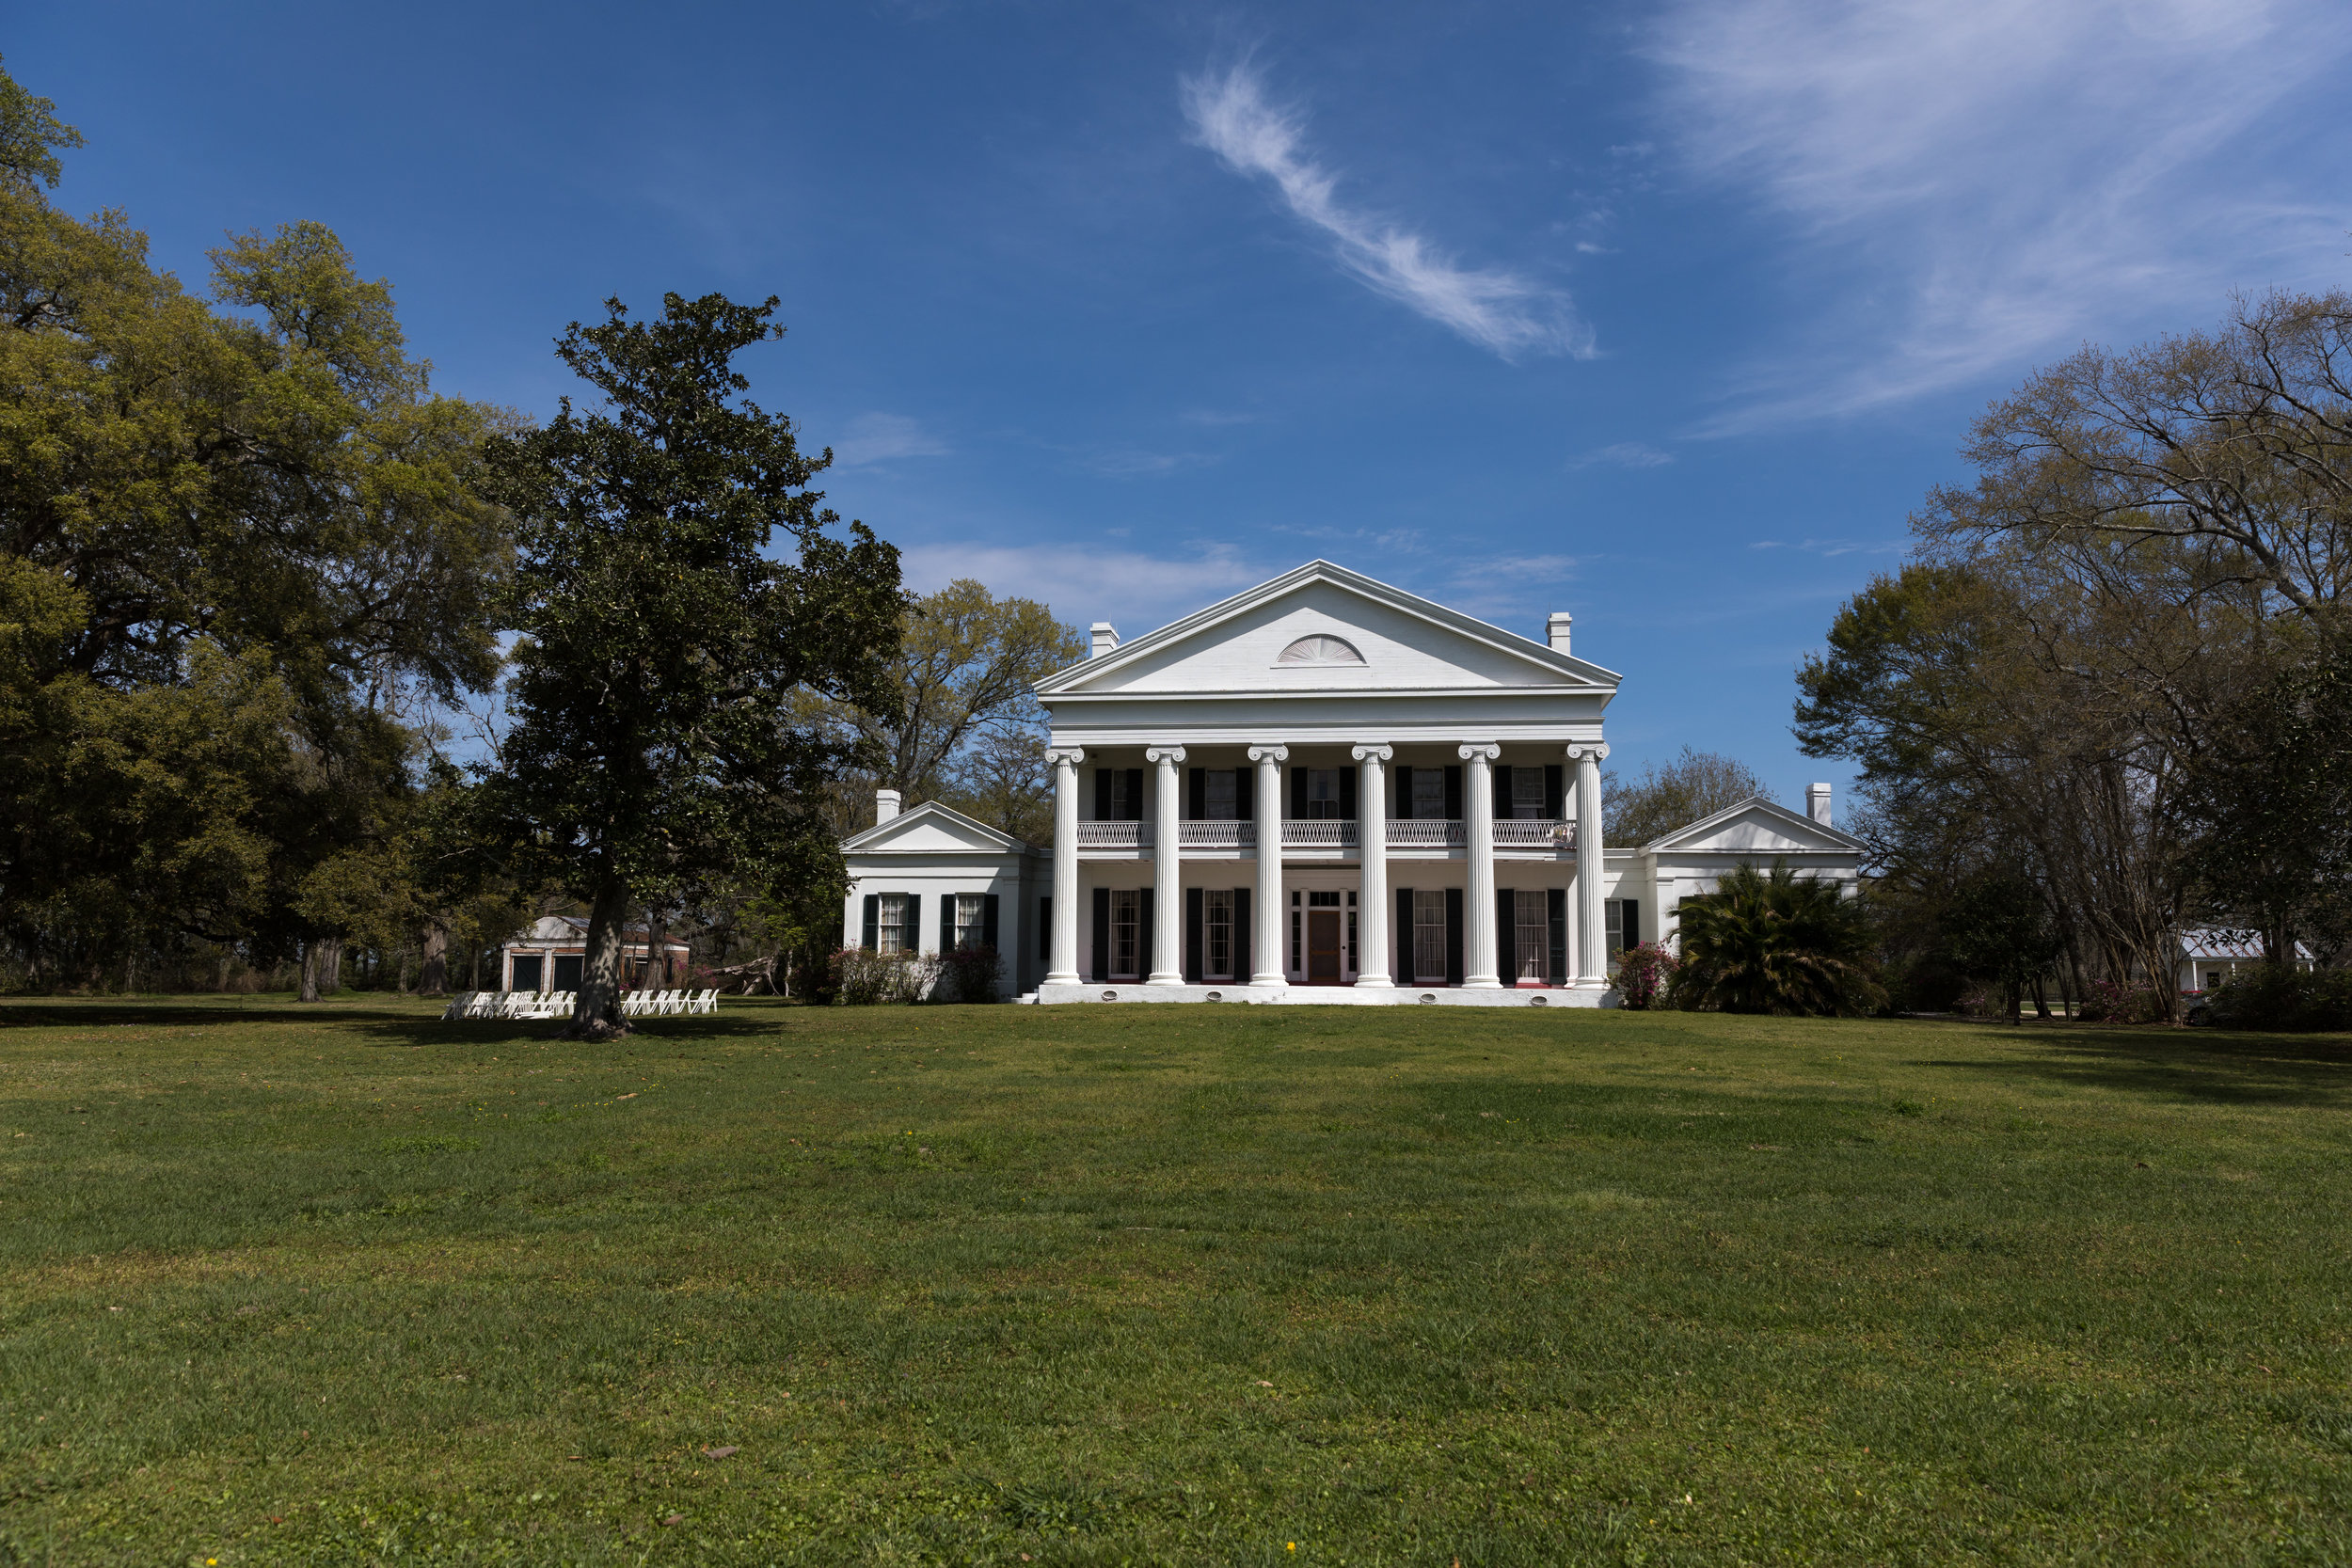 Cool facts - this plantation house is the set for the new movie 'The Beguiled' and for part of Beyoncé's video 'Lemonade'.